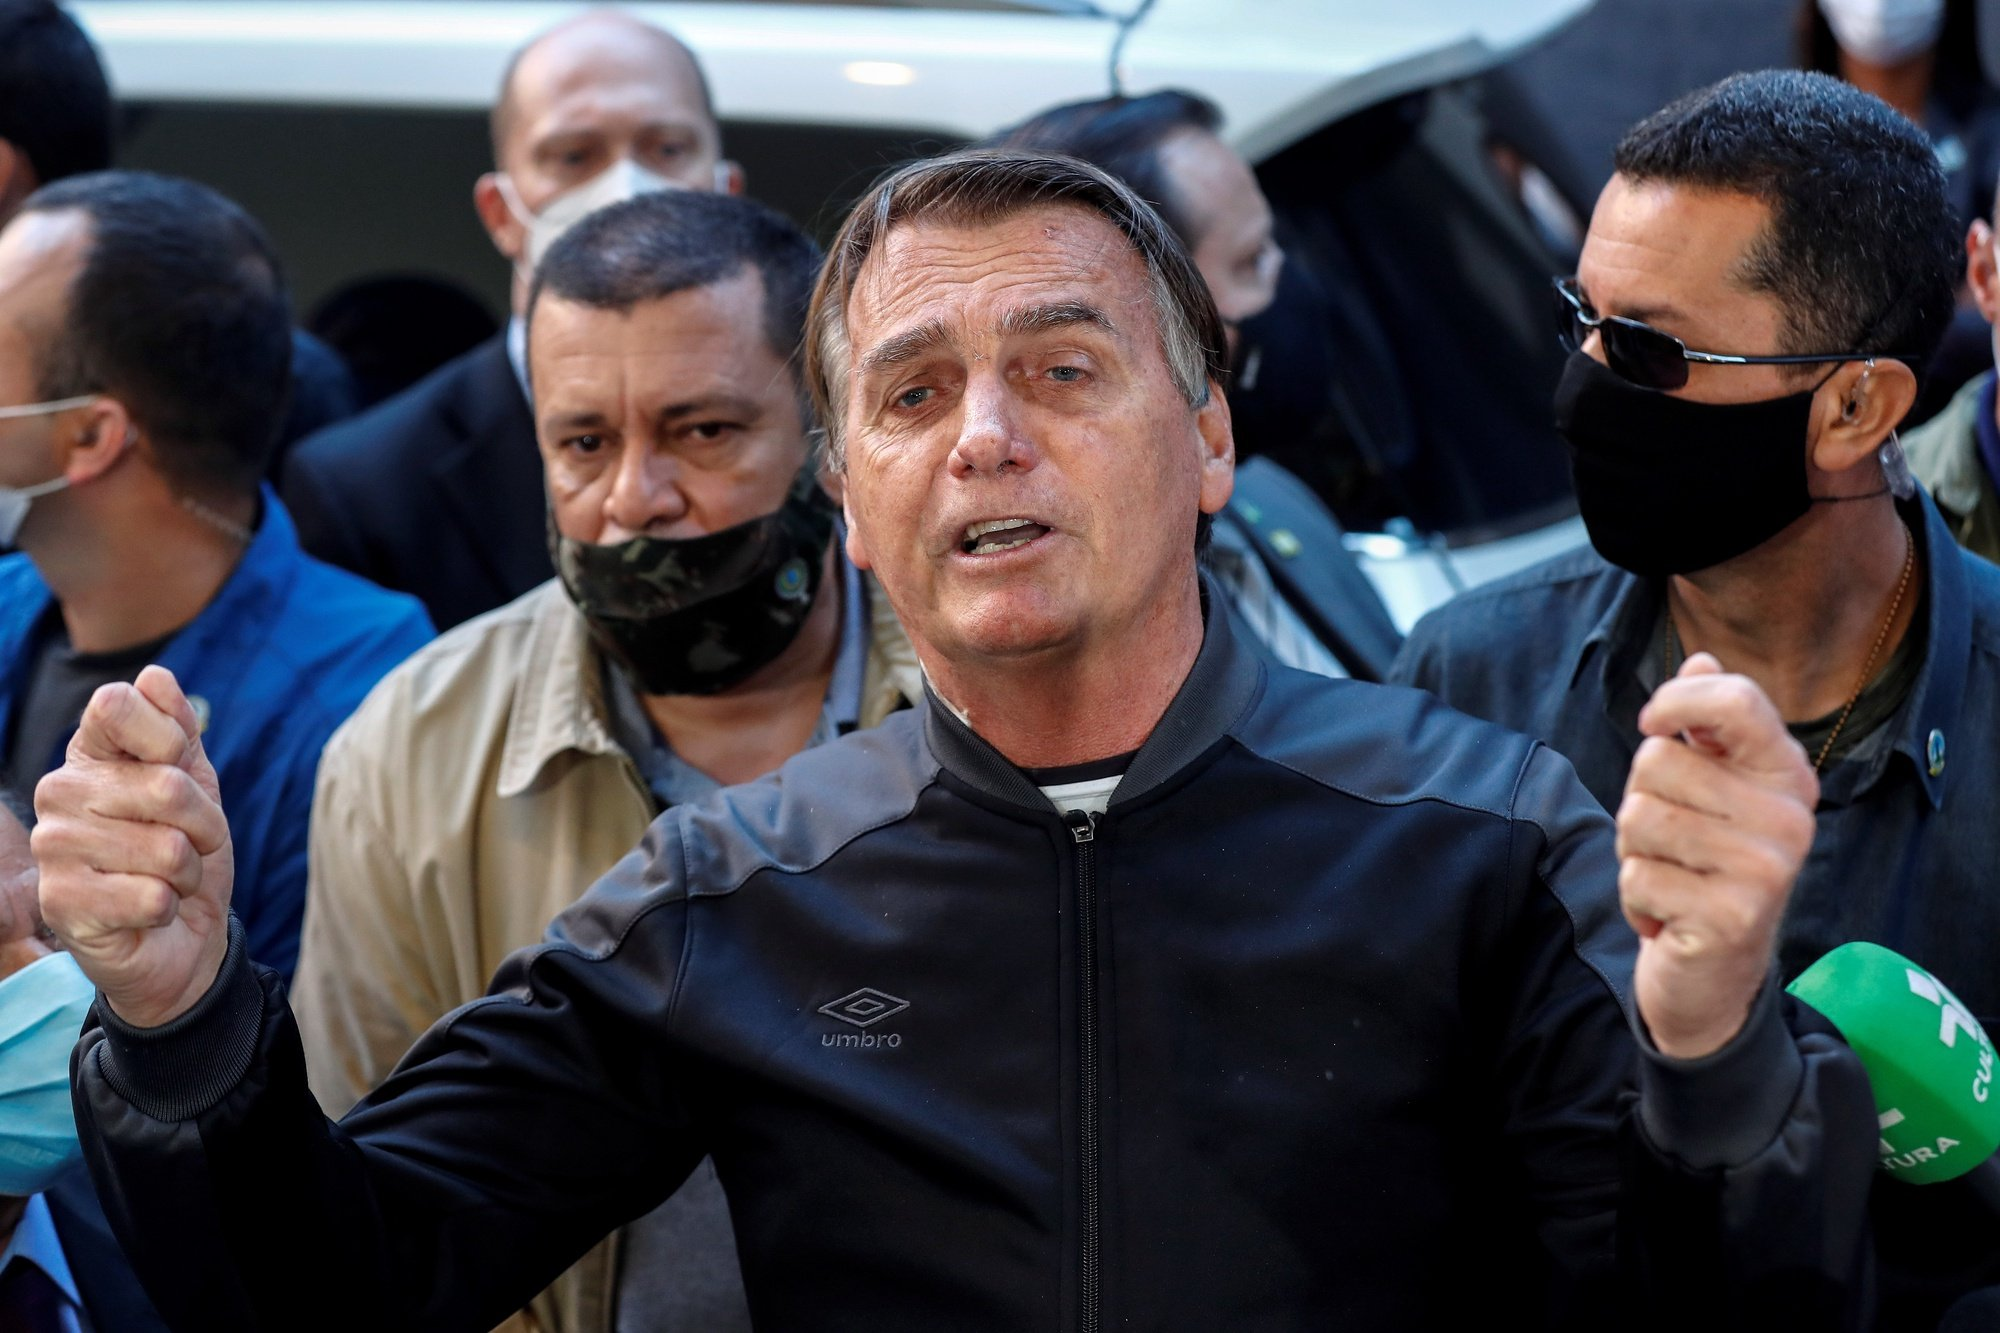 epa09351993 Brazilian President Jair Bolsonaro delivers remarks after he was discharged from Vila Nova Star Hospital, in Sao Paulo, Brazil, 18 July 2021. Bolsonaro was admitted to the Armed Forces Hospital in Brasilia on 14 July for chronic hiccups and abdominal pain and transferred to Sao Paulo the same day to treat an intestinal obstruction.  EPA/Sebastiao Moreira